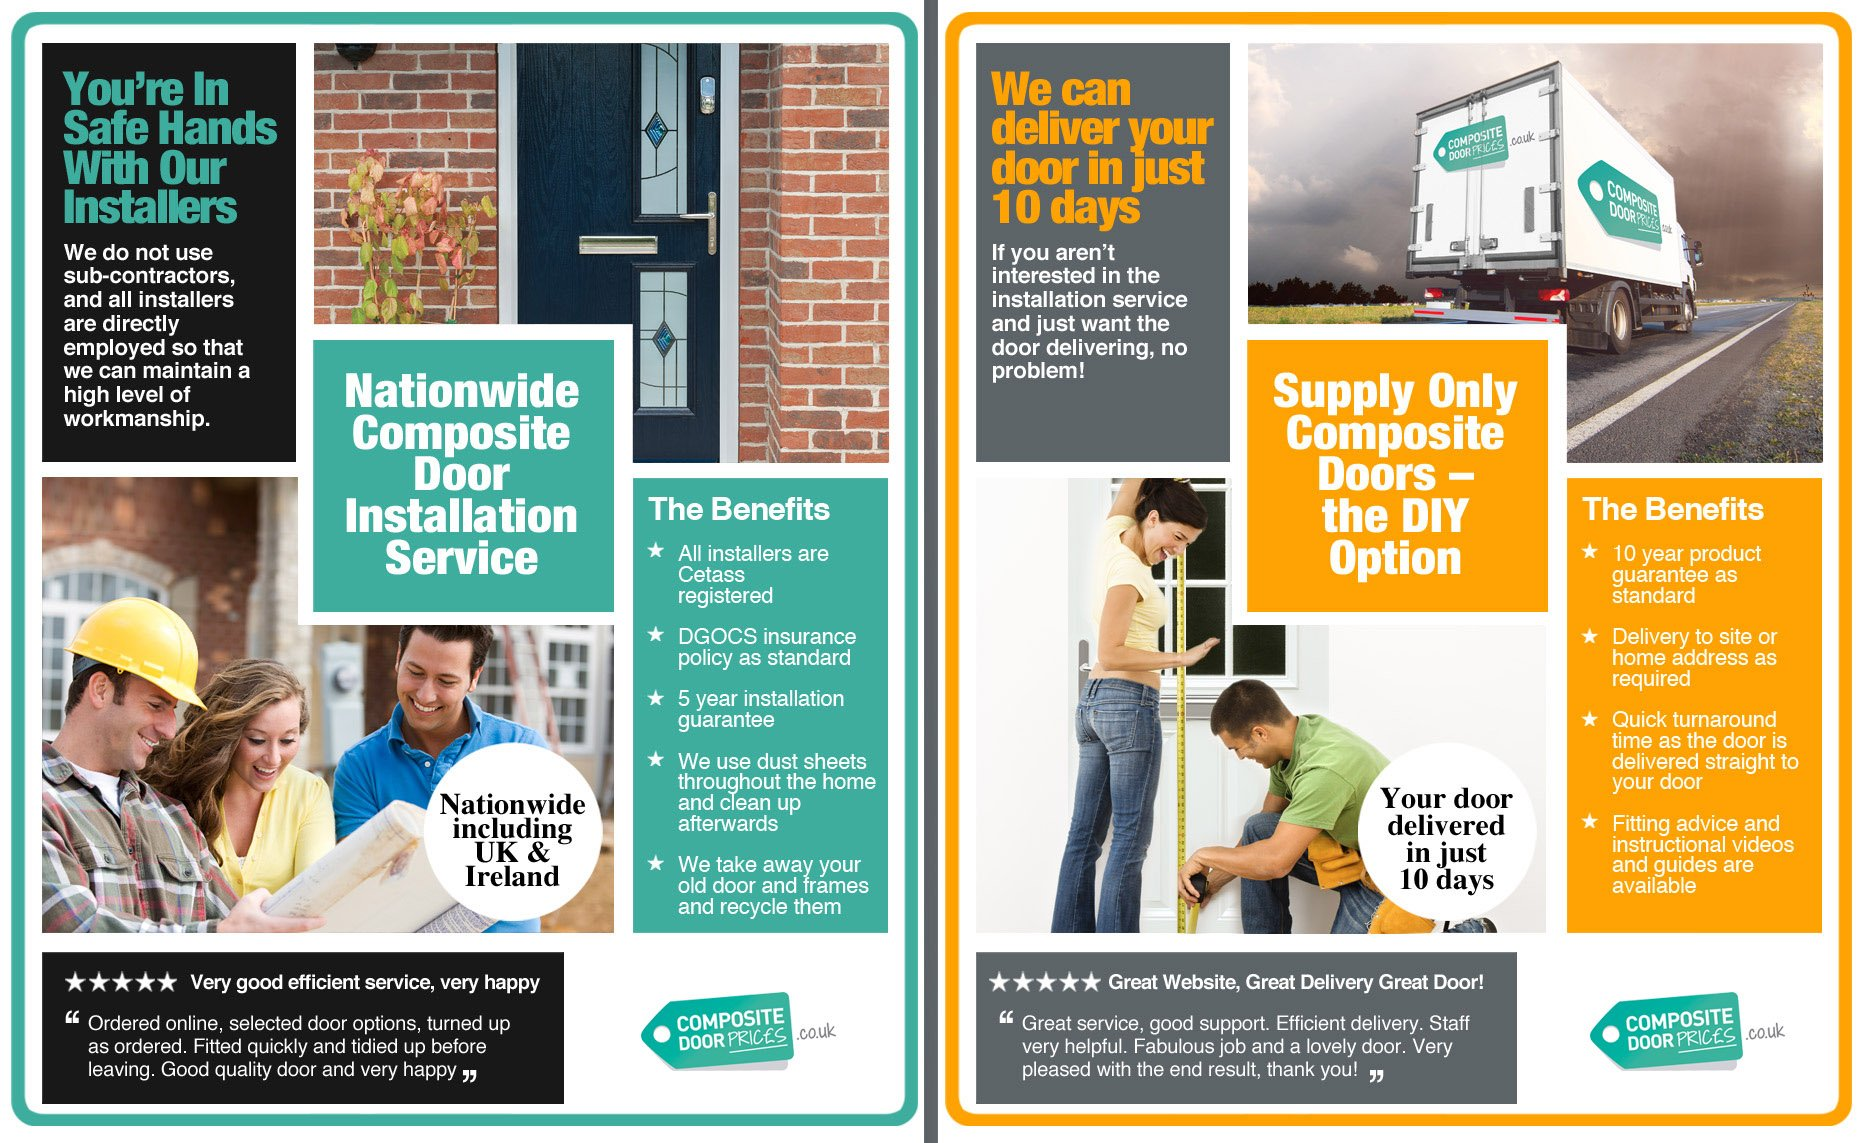 Install Or Delivery Composite Door Prices 0800 Handyman Changing A Light Fitting Wiring Doors